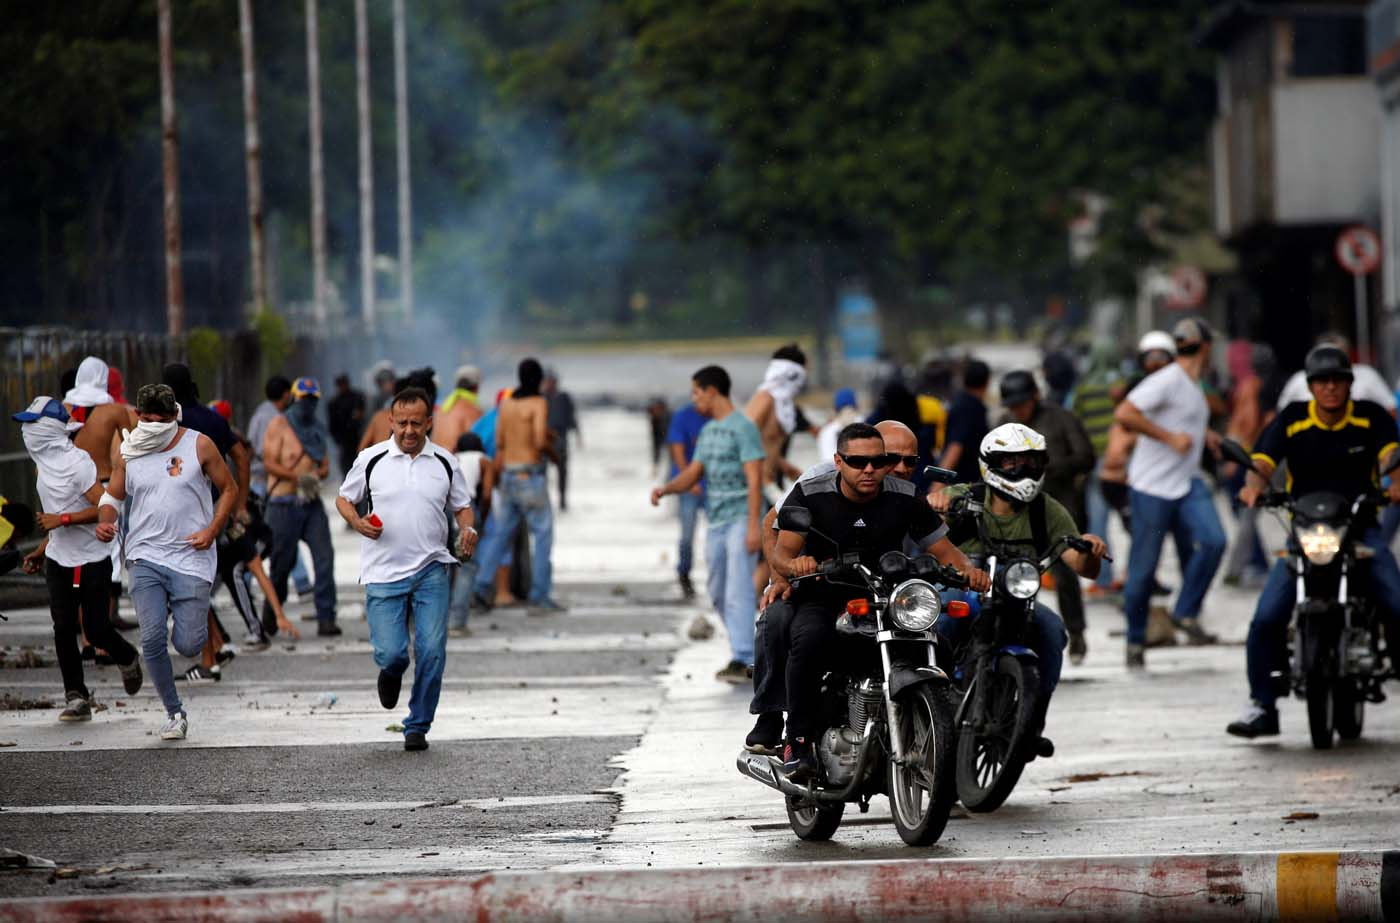 Demonstrators run and ride their motorcycles near Fuerte Paramacay military base during clashes with security forces in Valencia, Venezuela August 6, 2017. REUTERS/Andres Martinez Casares